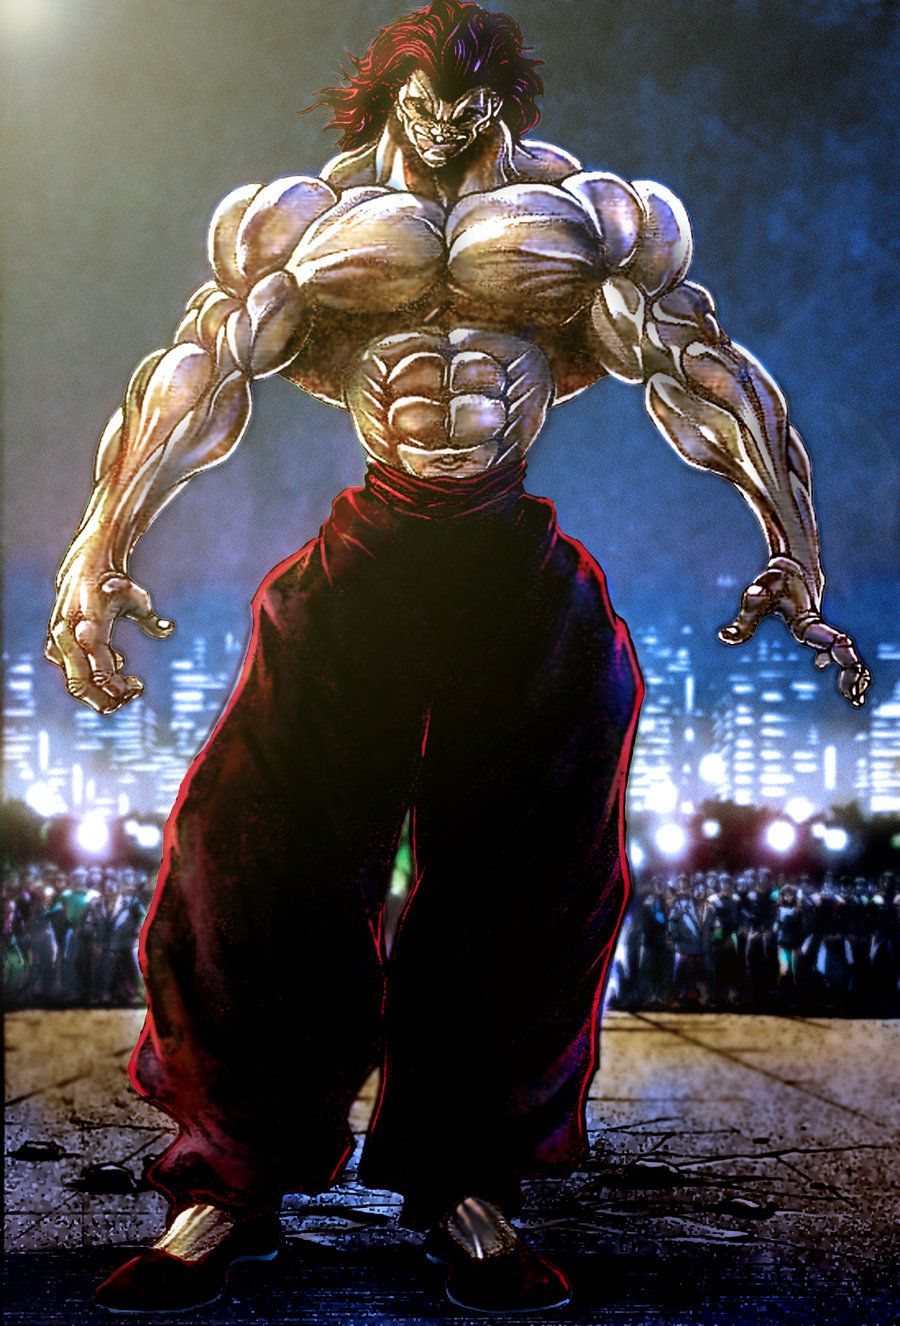 Pin by rob on baki (With images) Grappler, Anime images